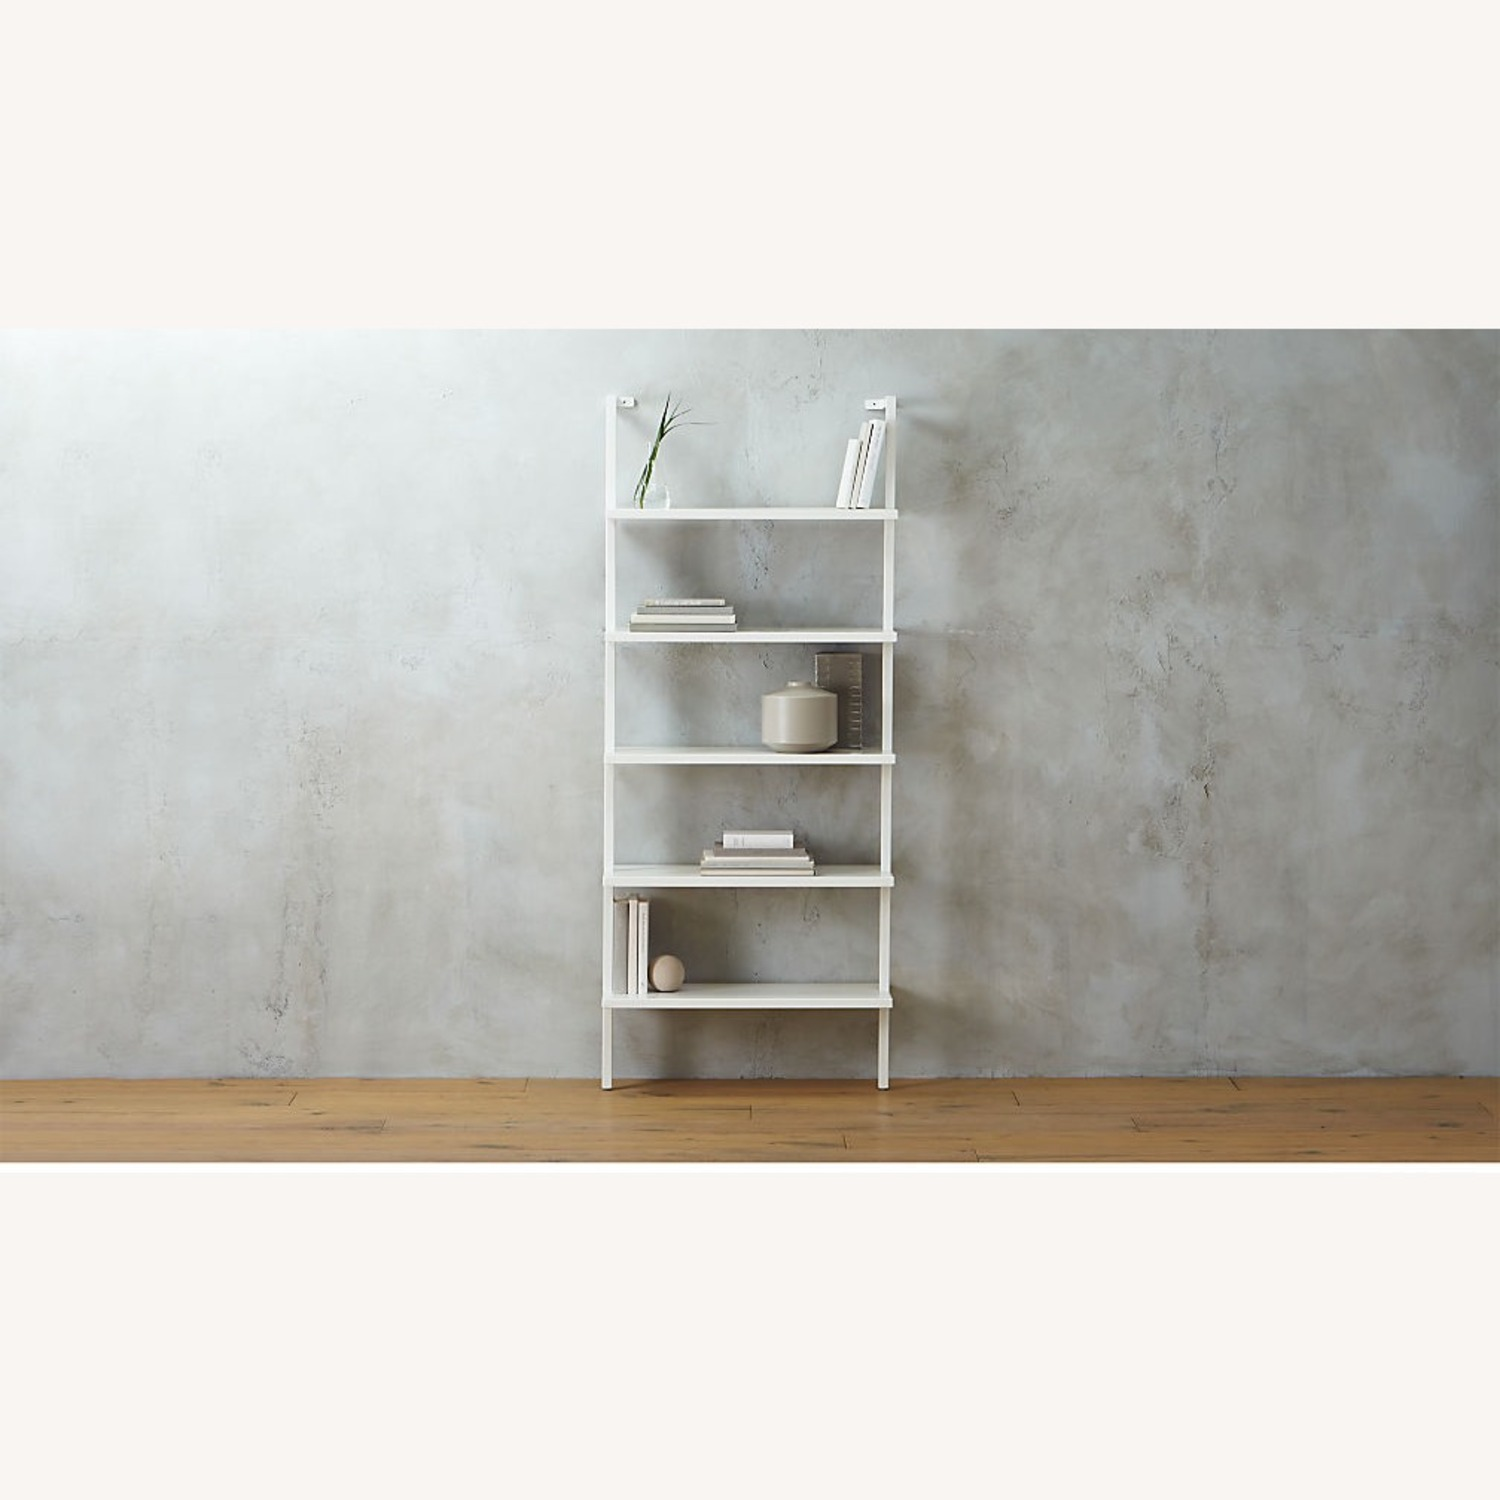 CB2 Stairway White Wall Mounted Bookcase - image-4